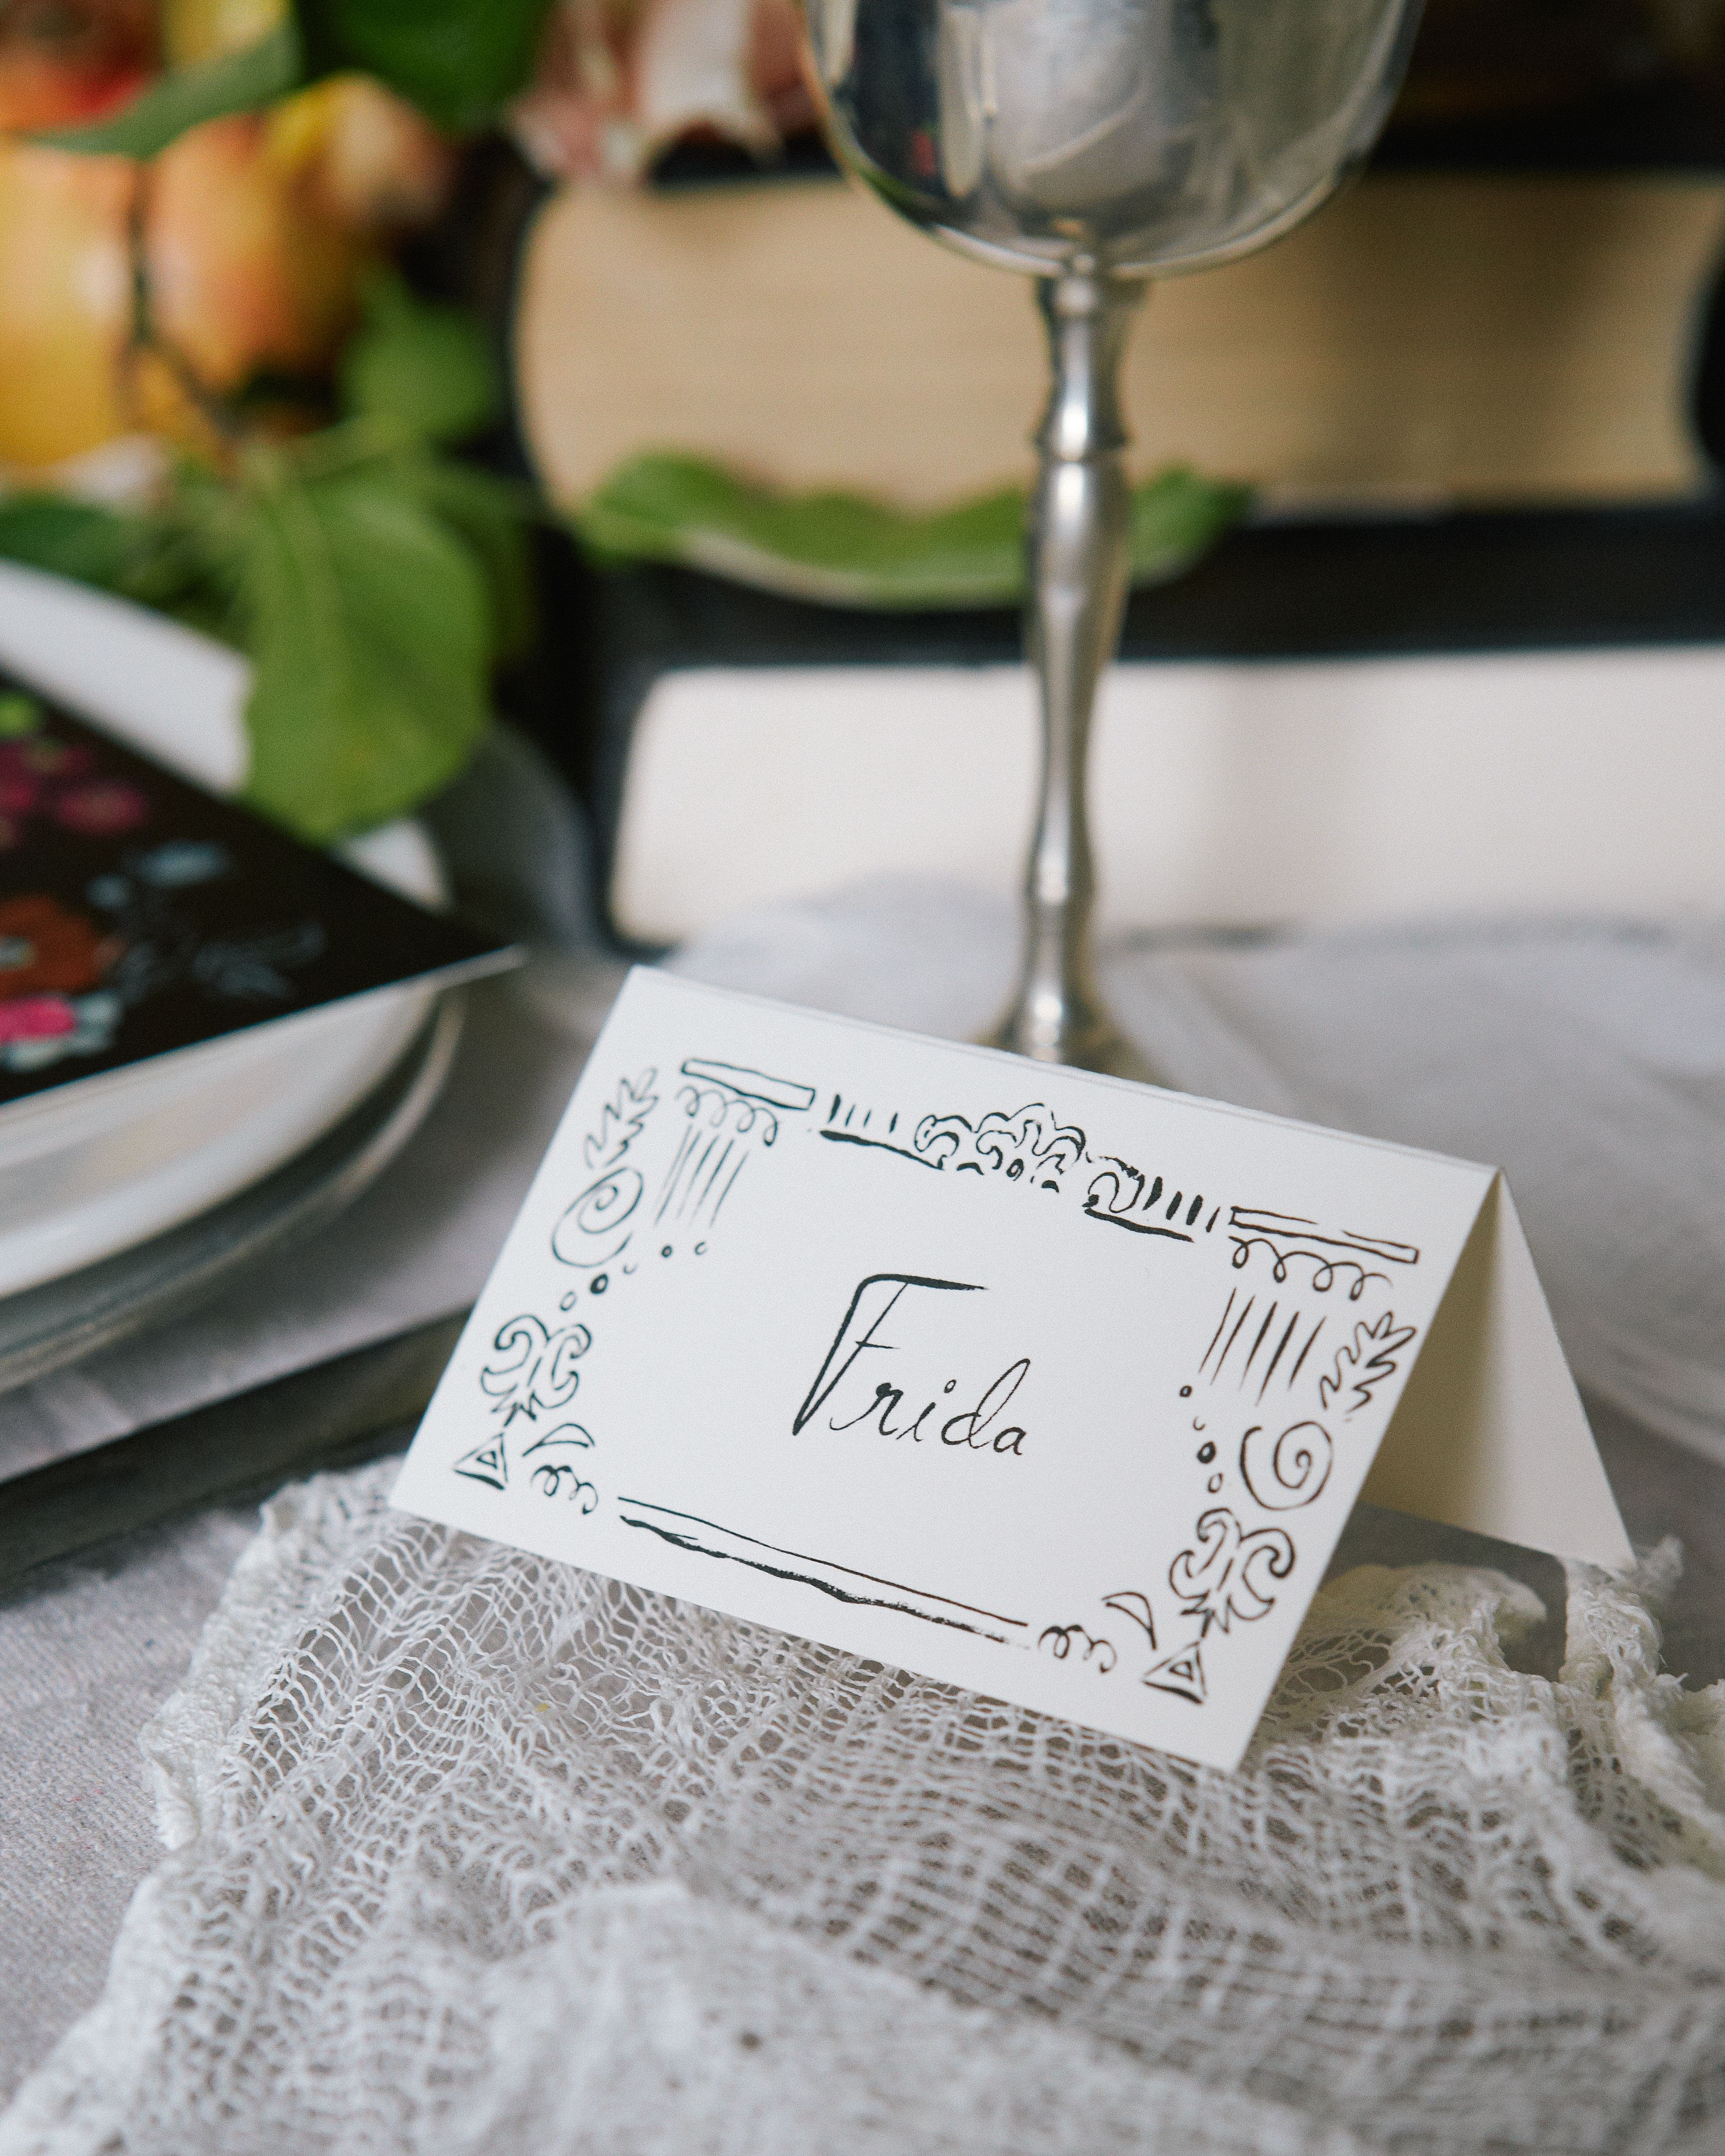 Charming Dinner Party Name Ideas Part - 1: 11 Ideas For A Halloween Dinner Party